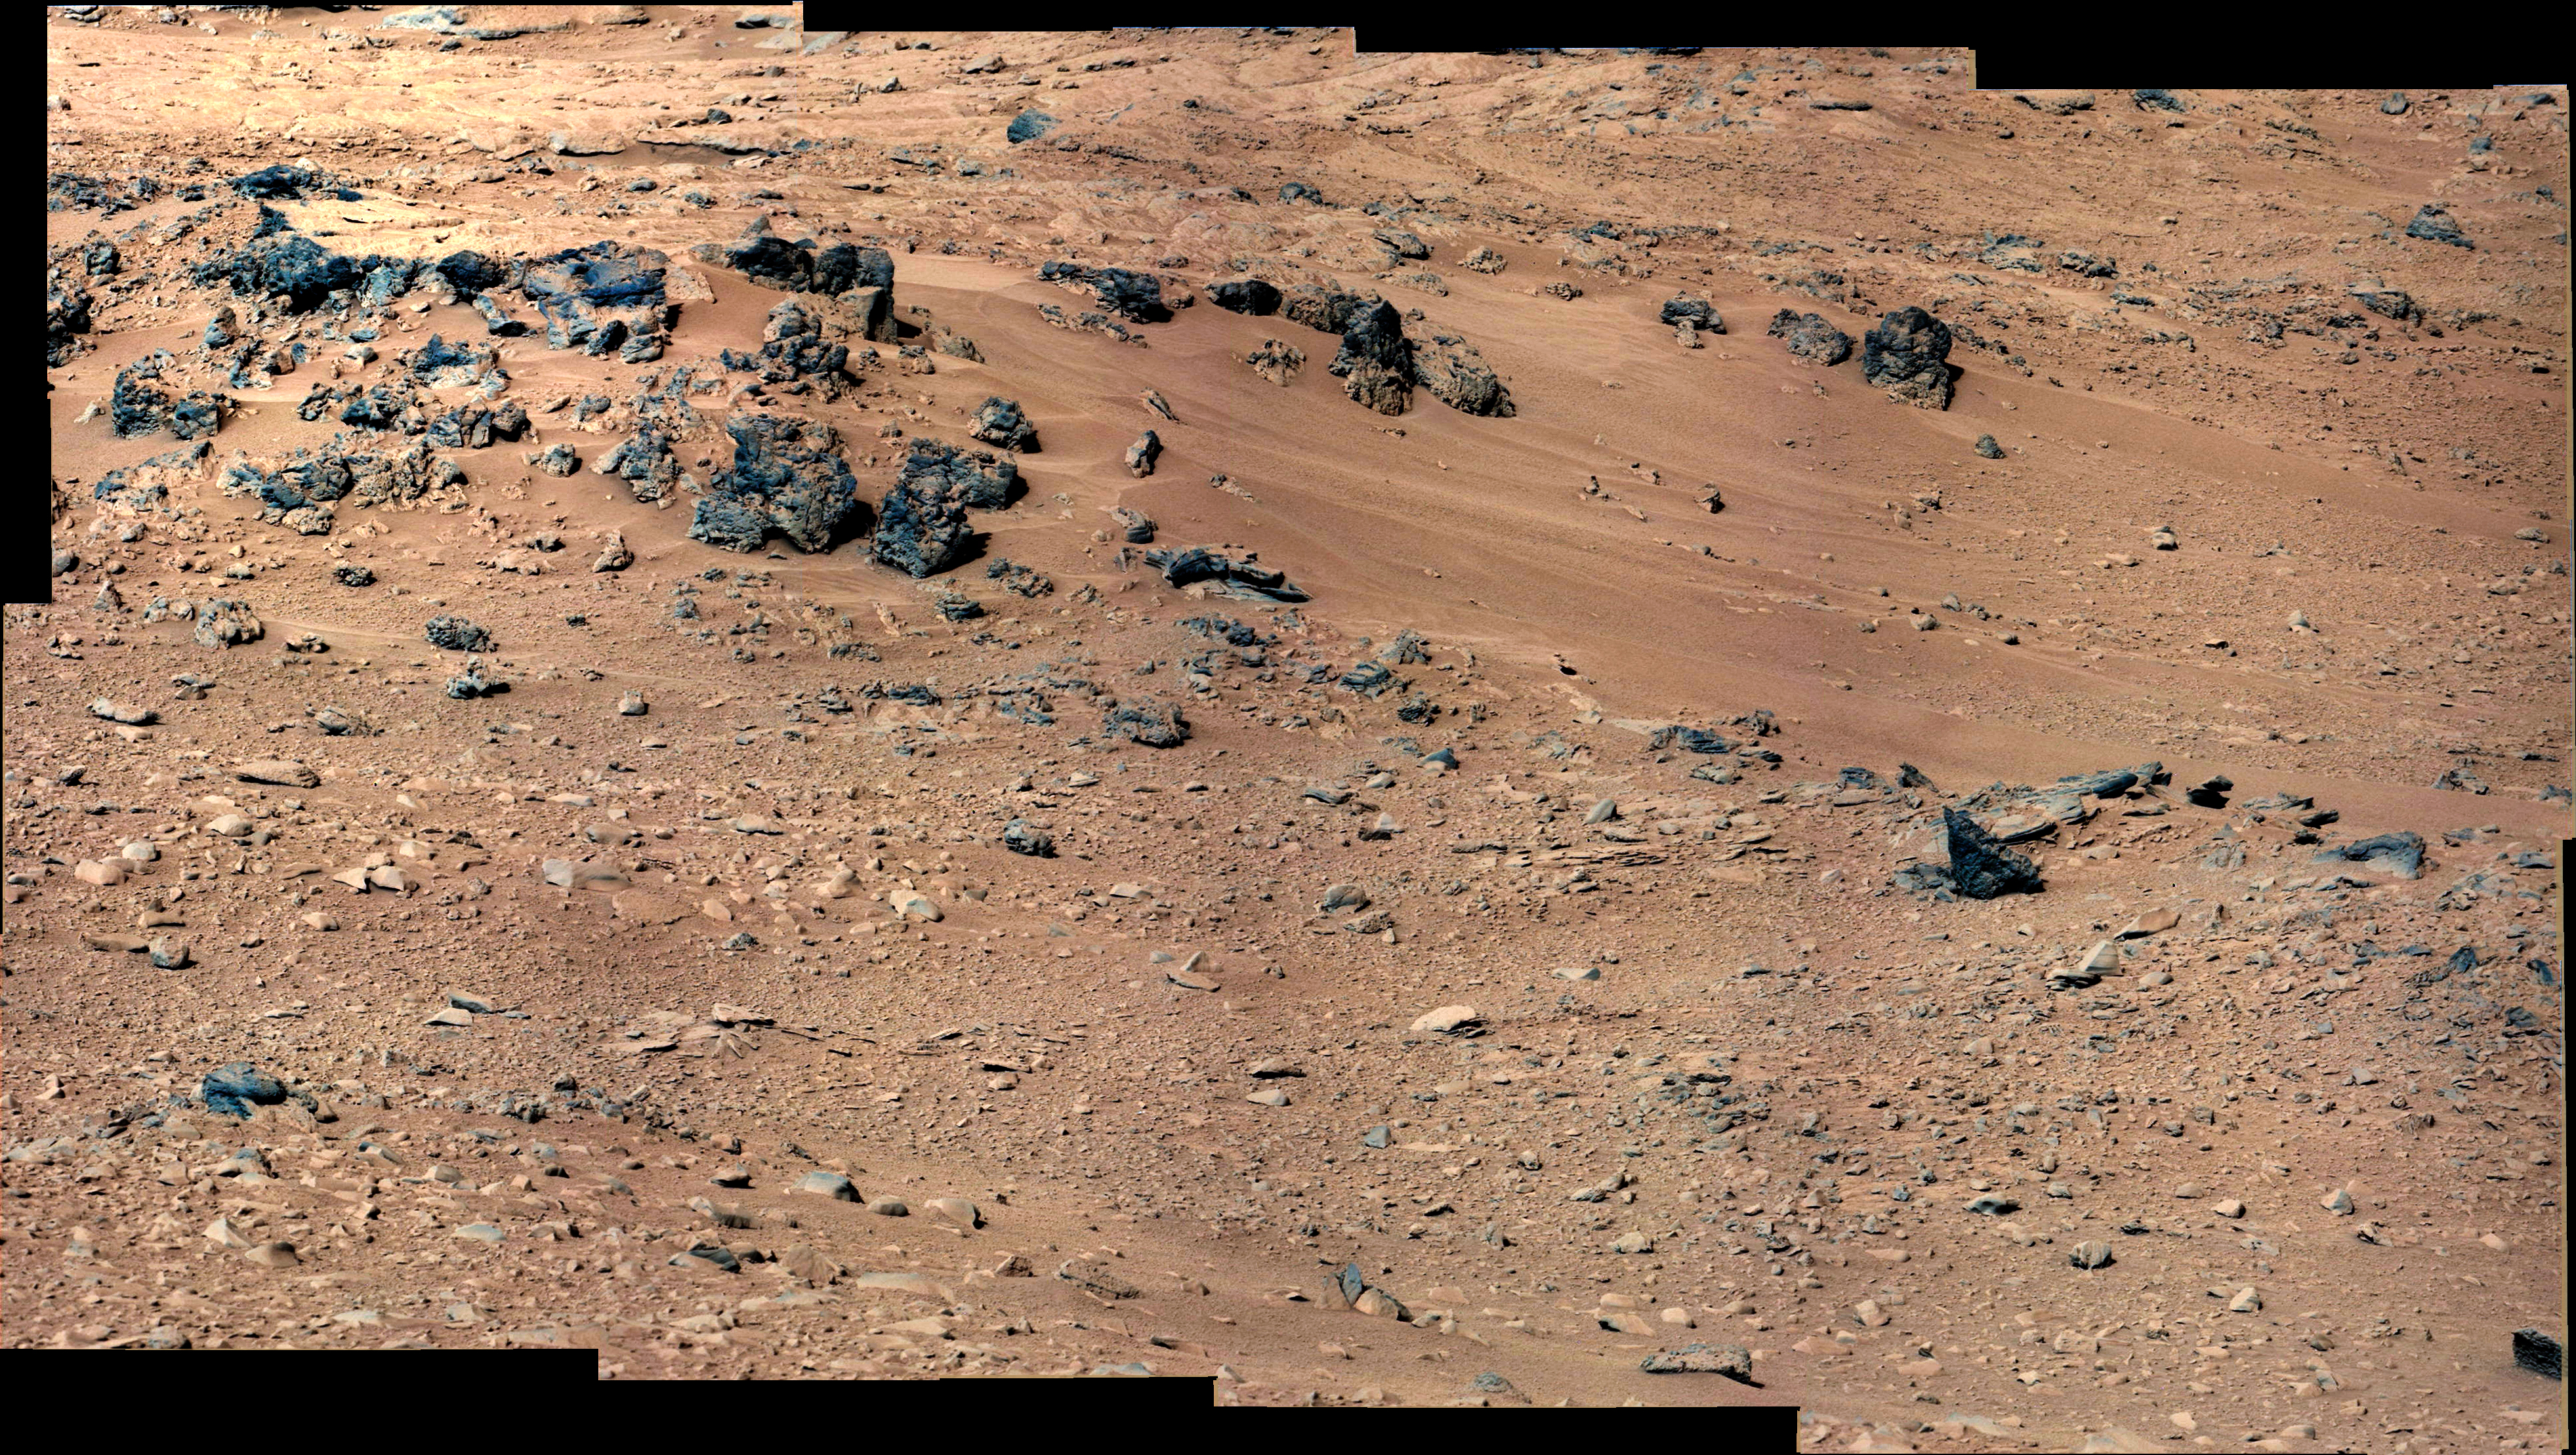 This patch of windblown sand and dust downhill from a cluster of dark rocks is the  Rocknest  site, which has been selected as the likely location for first use of the scoop on the arm of NASA's Mars rover Curiosity. This view is a mosaic of images taken by the telephoto right-eye camera of the Mast Camera (Mastcam) during the 52nd Martian day, or sol, of the mission (Sept. 28, 2012).